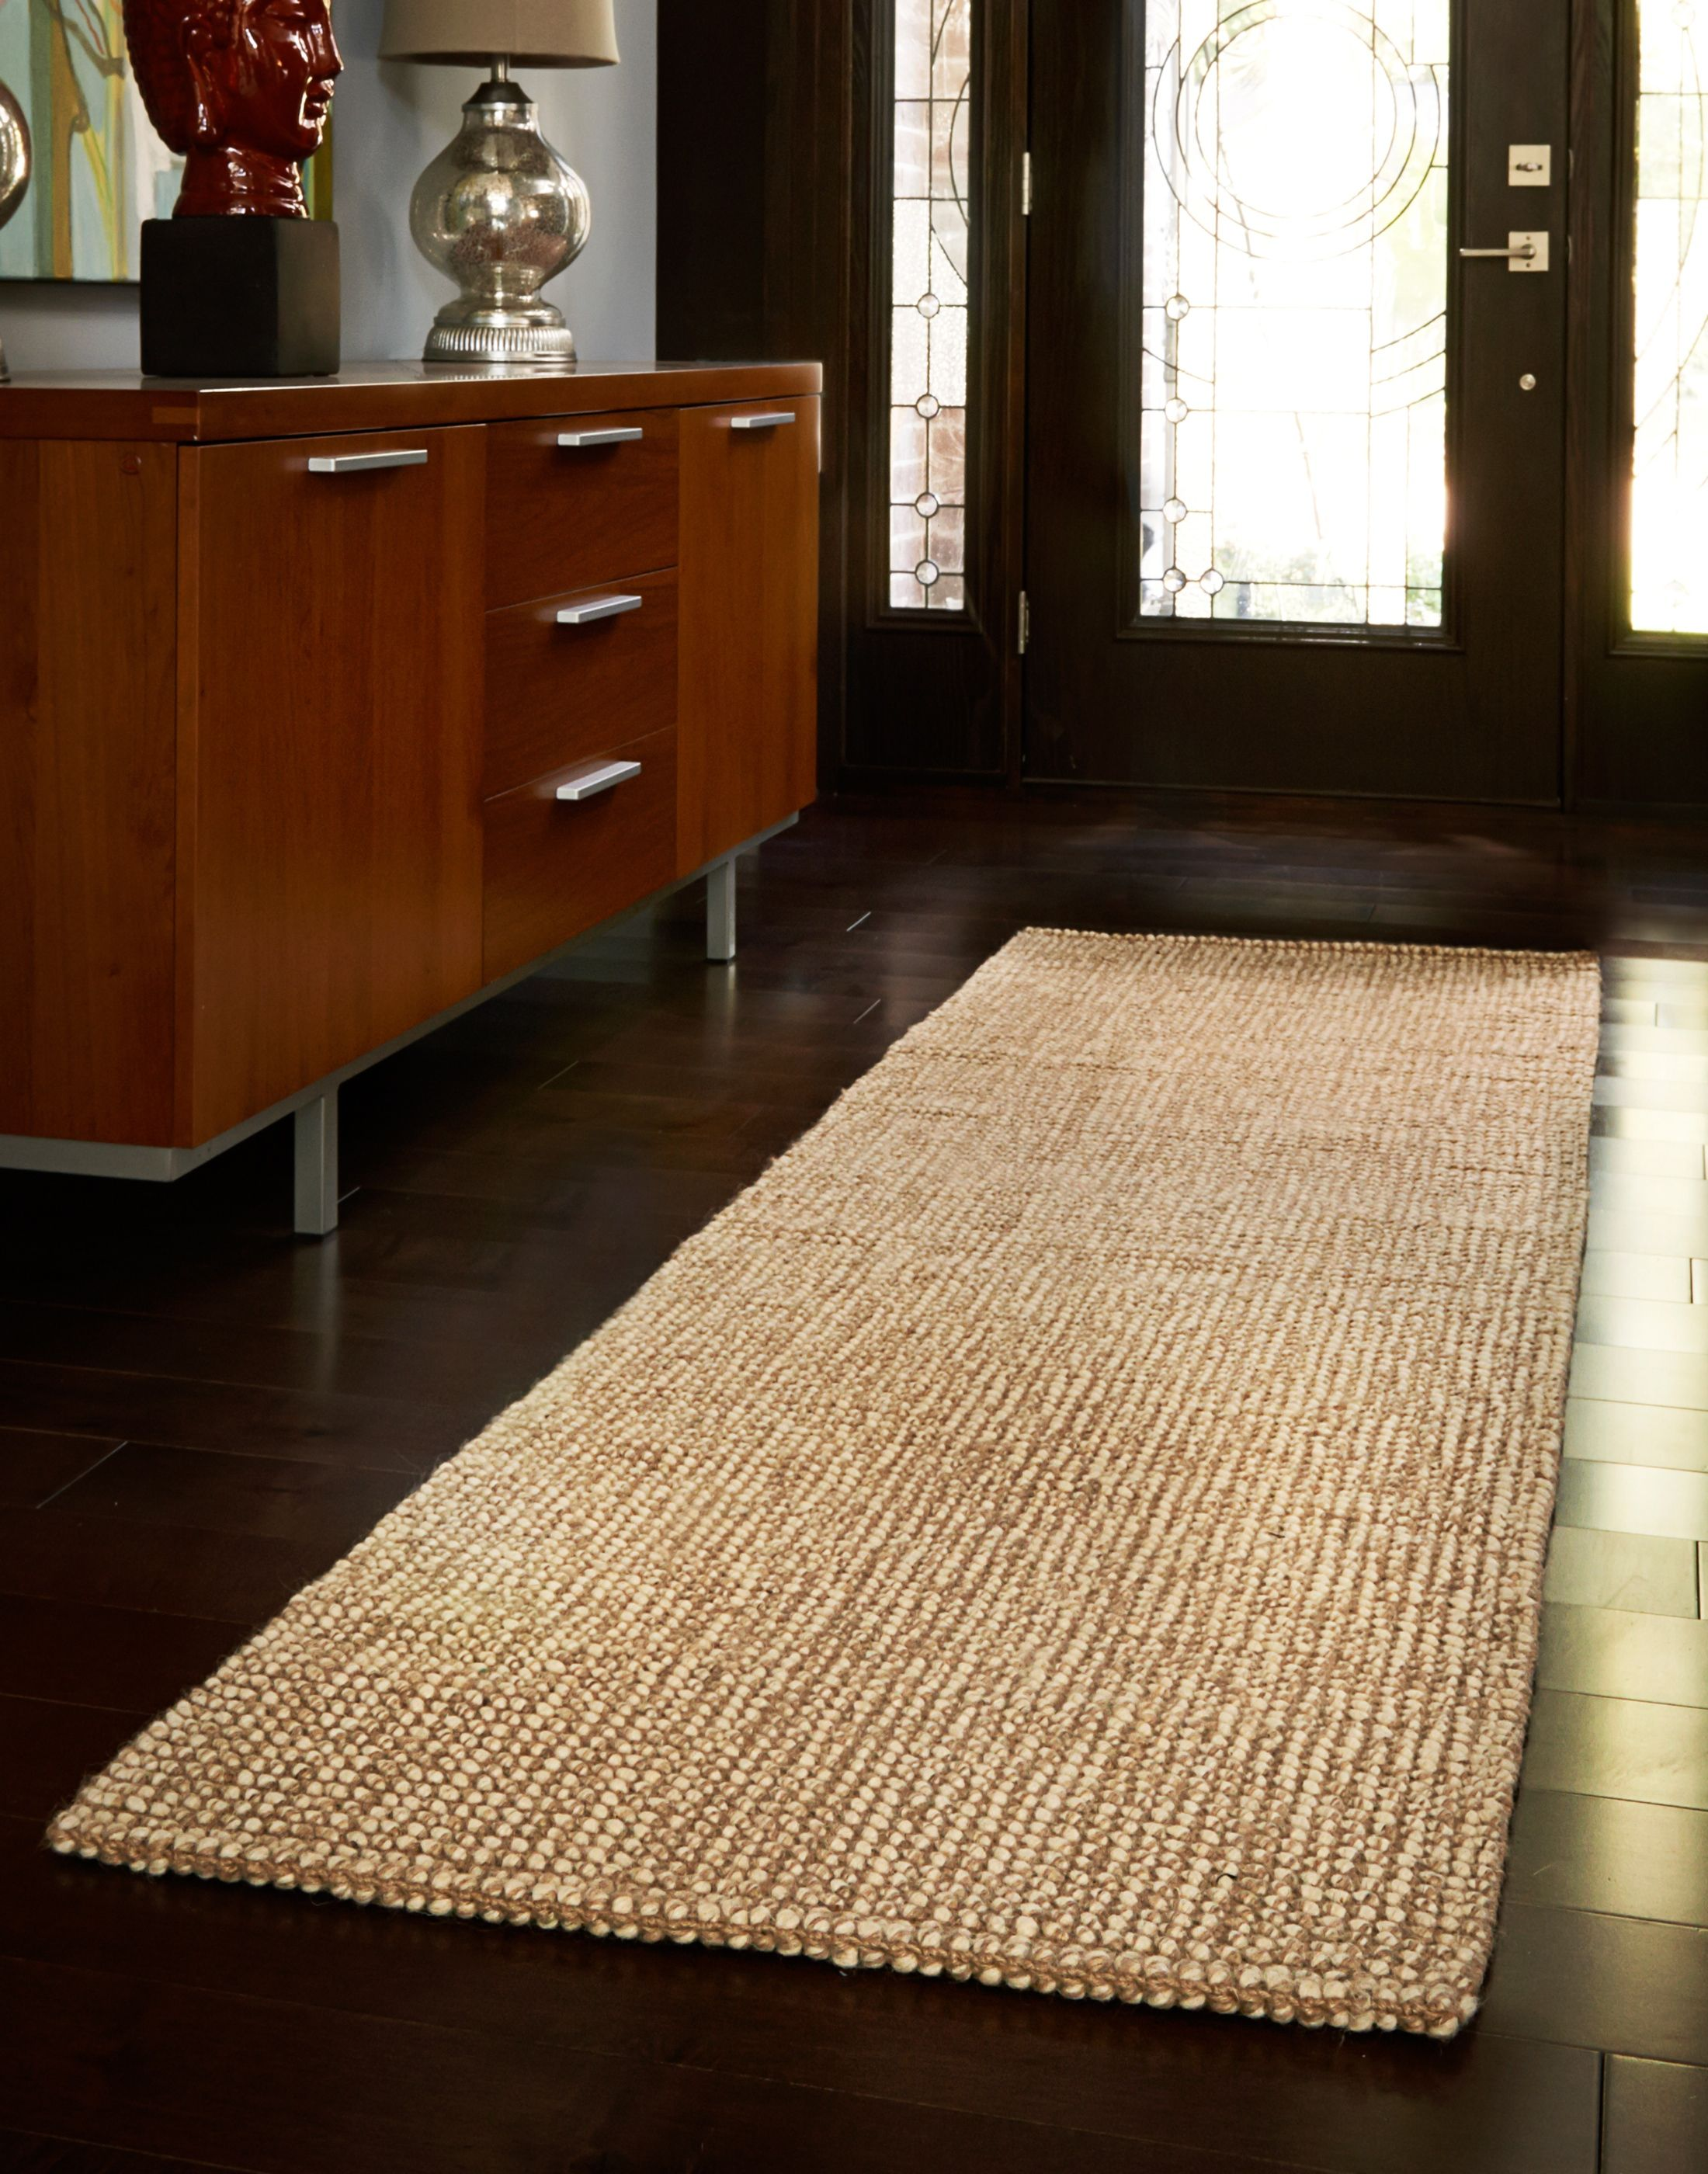 Nice Brown Striped Runner Rug Entryway Hallway Home Decor